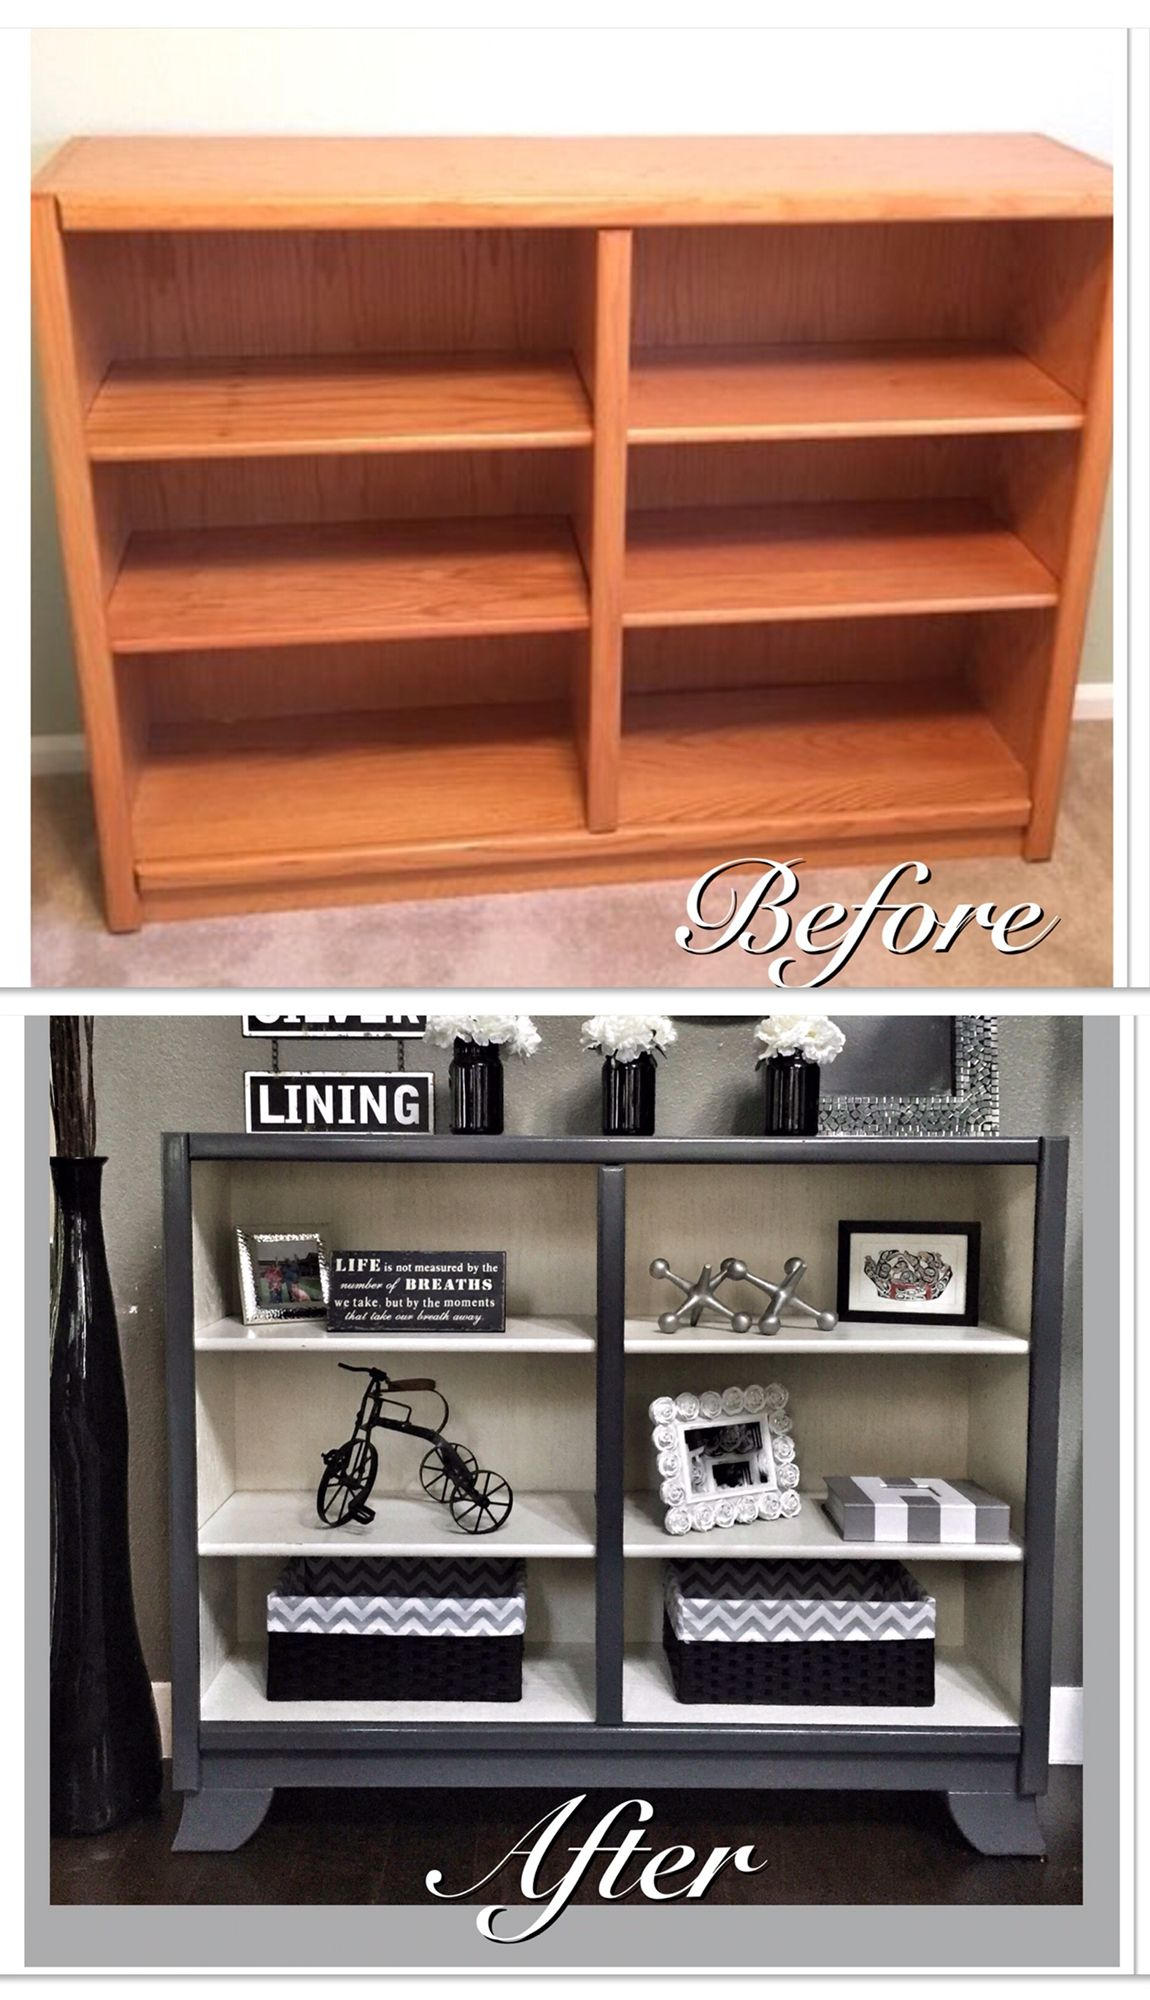 Before After Drab Oak Shelf Refinished Add Some Legs Paint Out In A Soft Cream And Mod Grey Get Gorgeous Results